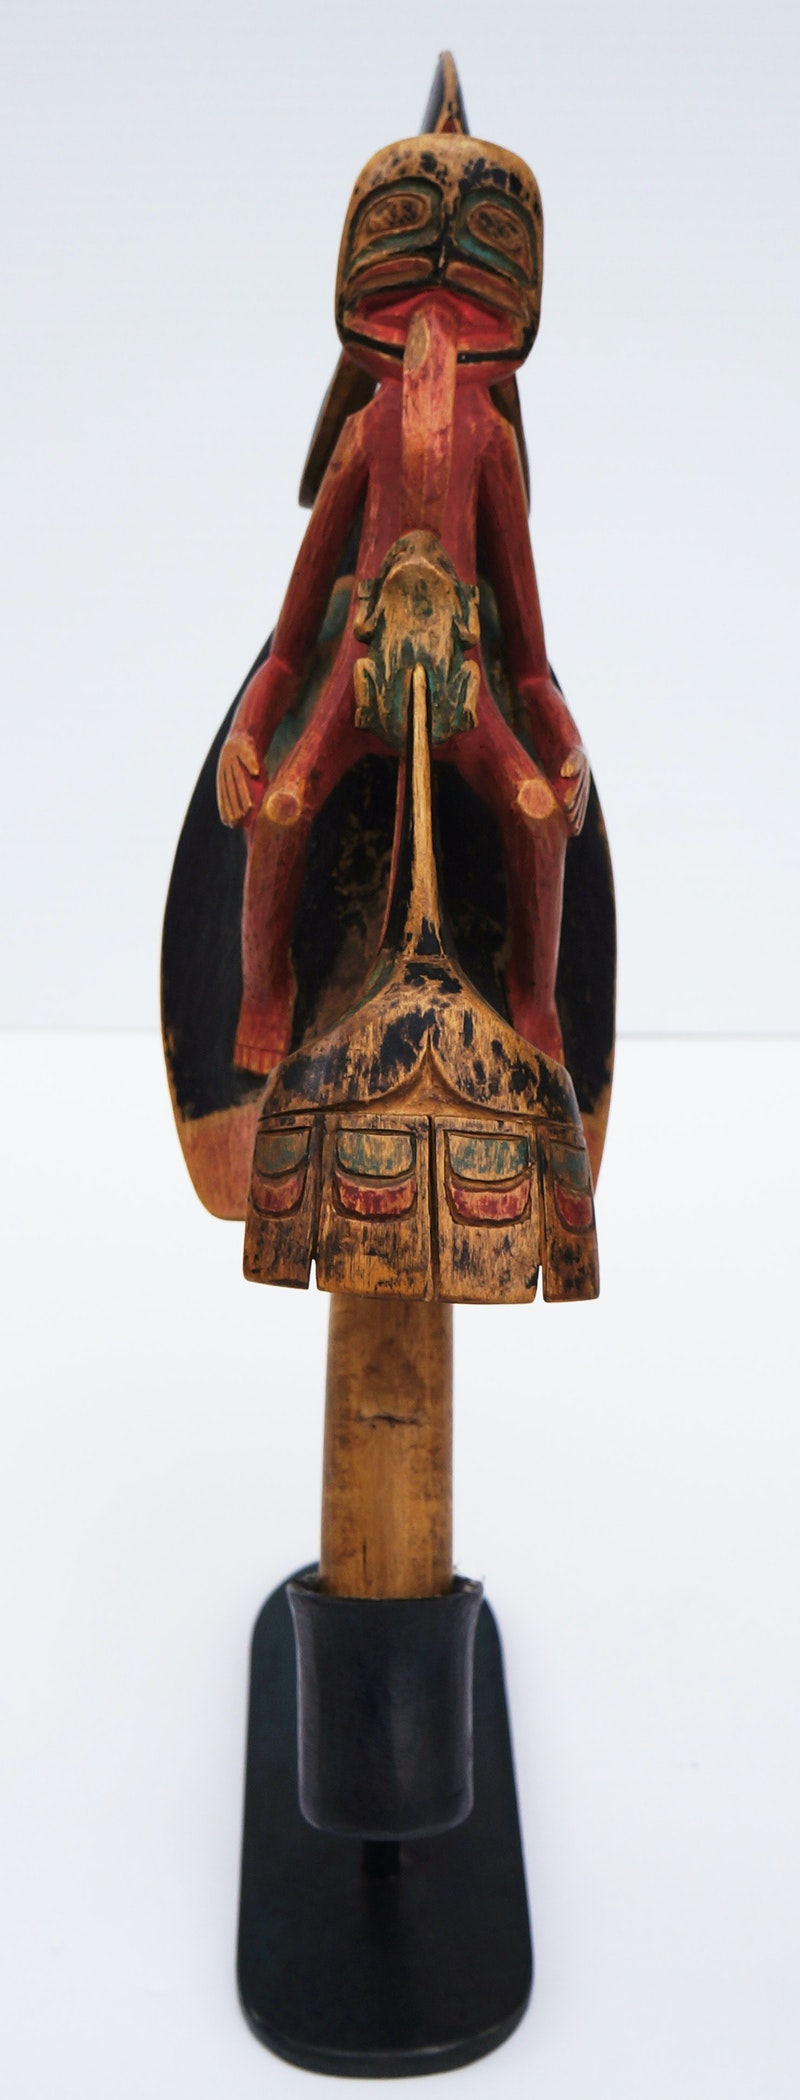 Chief's Rattle Image 4